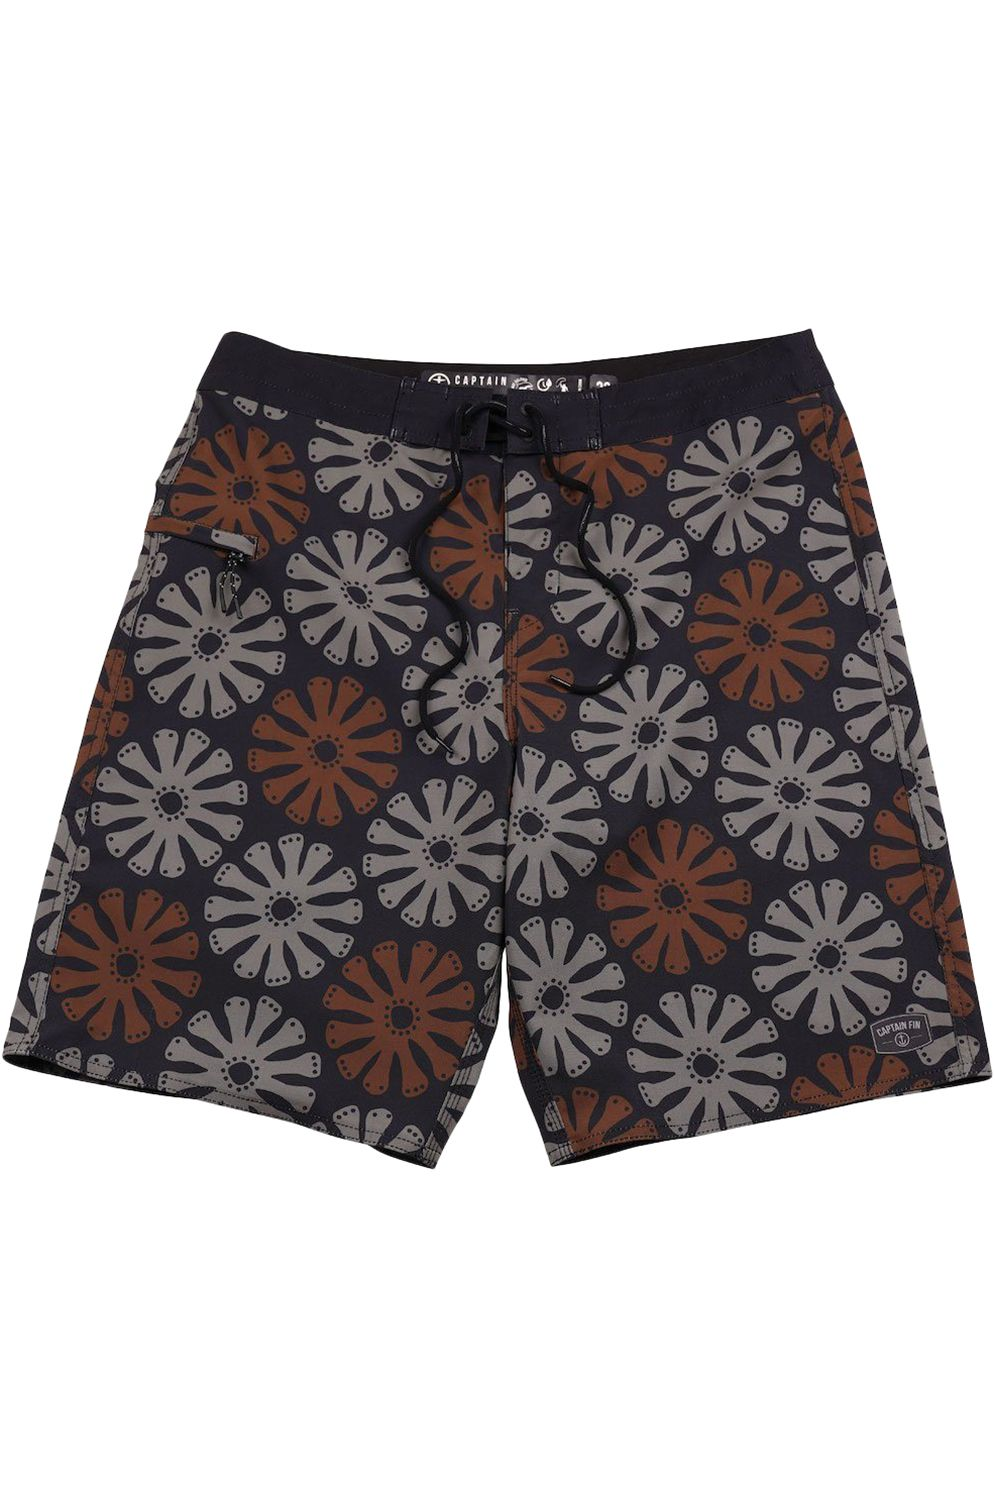 Captain Fin Boardshorts TRANSISTOR CHOICES 21in Faded Black